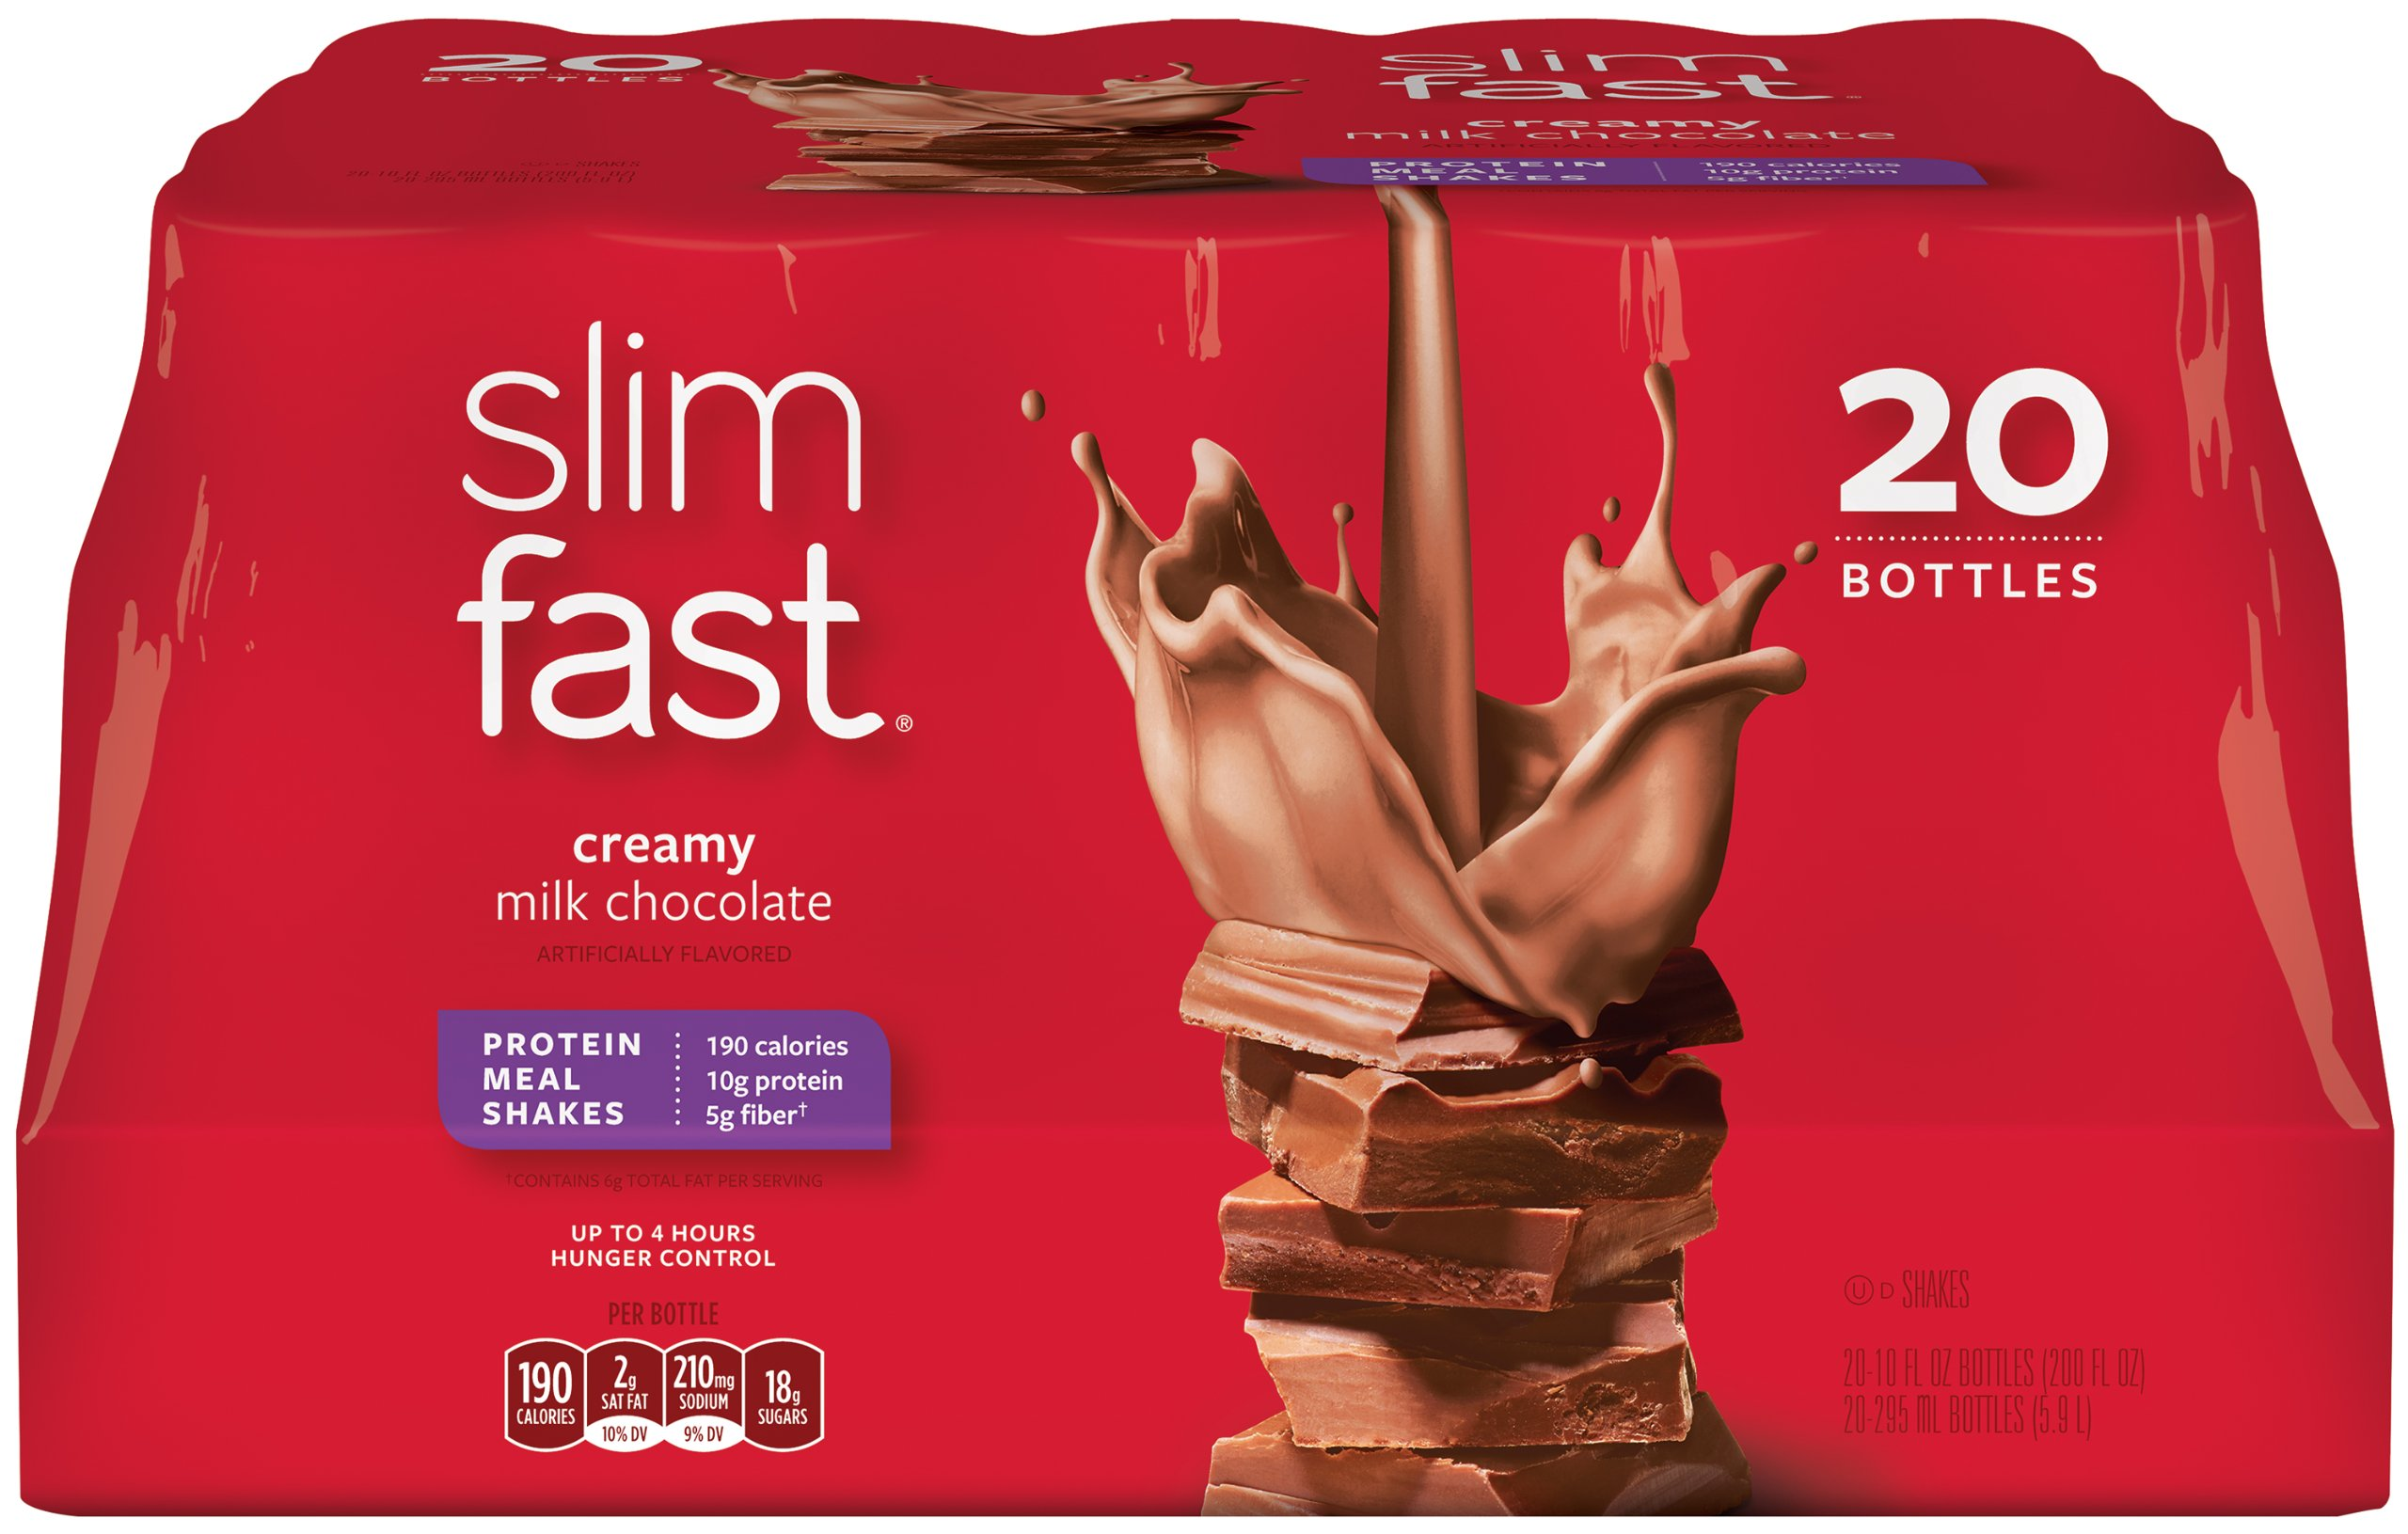 Slim Fast Original weight loss Meal Replacement RTD shakes with 10g of protein and 4g of fiber plus 24 Vitamins and Minerals per serving, Creamy Milk Chocolate,  20 Count by SlimFast